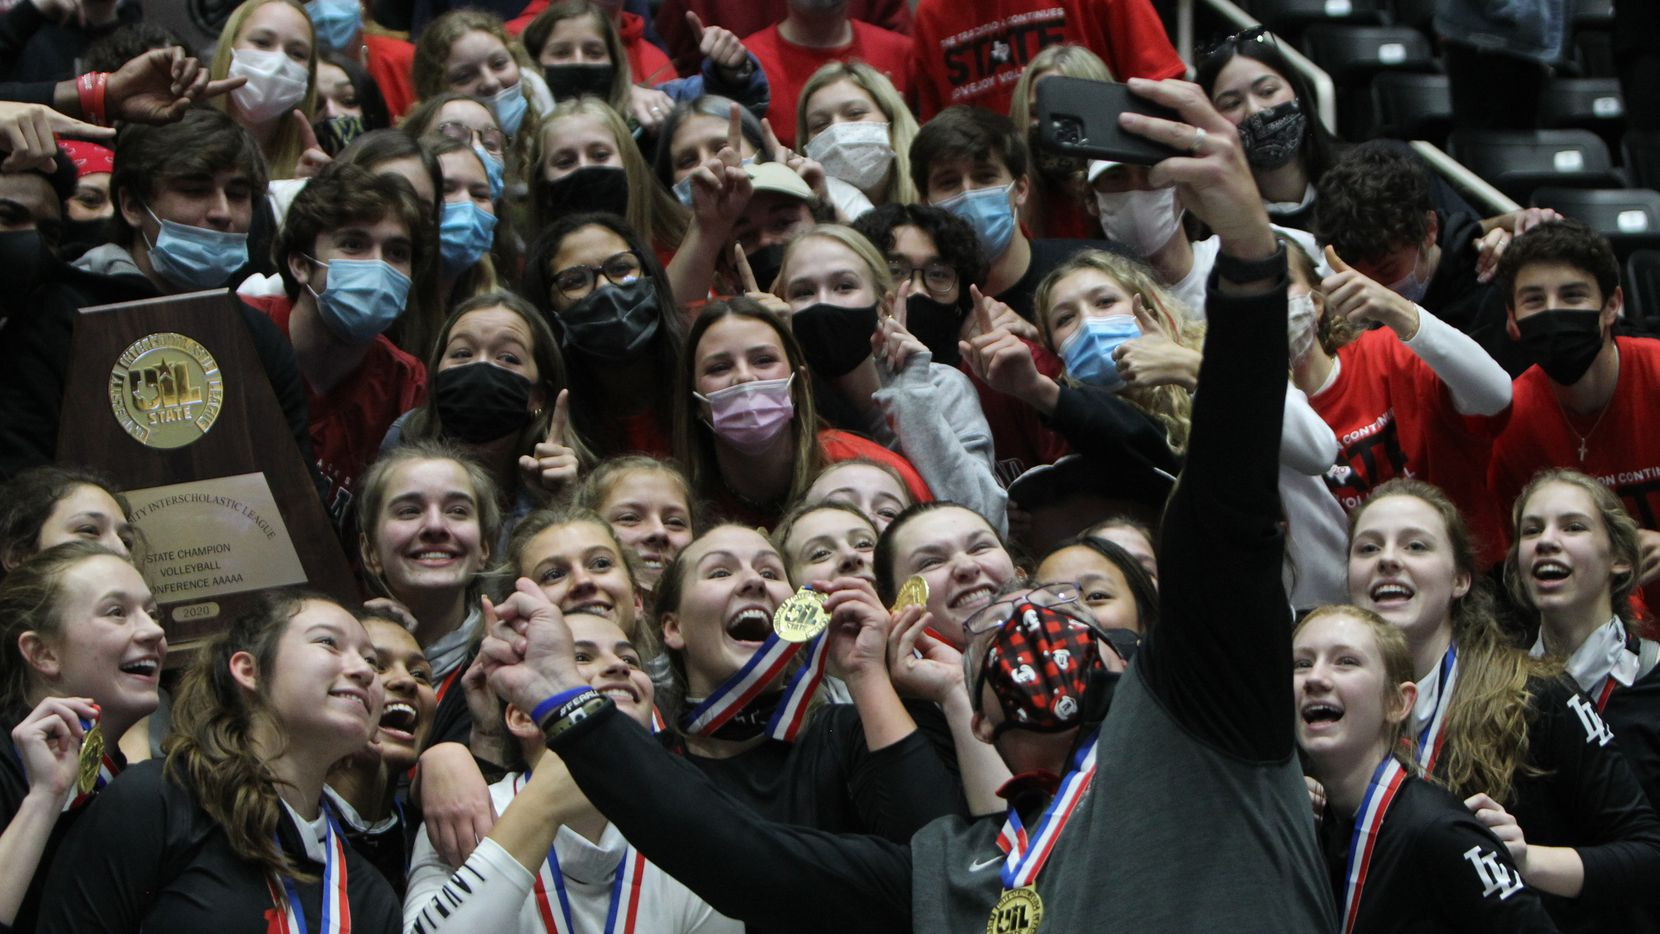 What better time to pause for a group selfy as the Lovejoy players celebrate with the student section of fans following their state championship victory over Lamar Fulshear in straight sets. The two teams played their Class 5A state championship volleyball match at Curtis Culwell Center in Garland on December 12, 2020. (Steve Hamm/ Special Contributor)